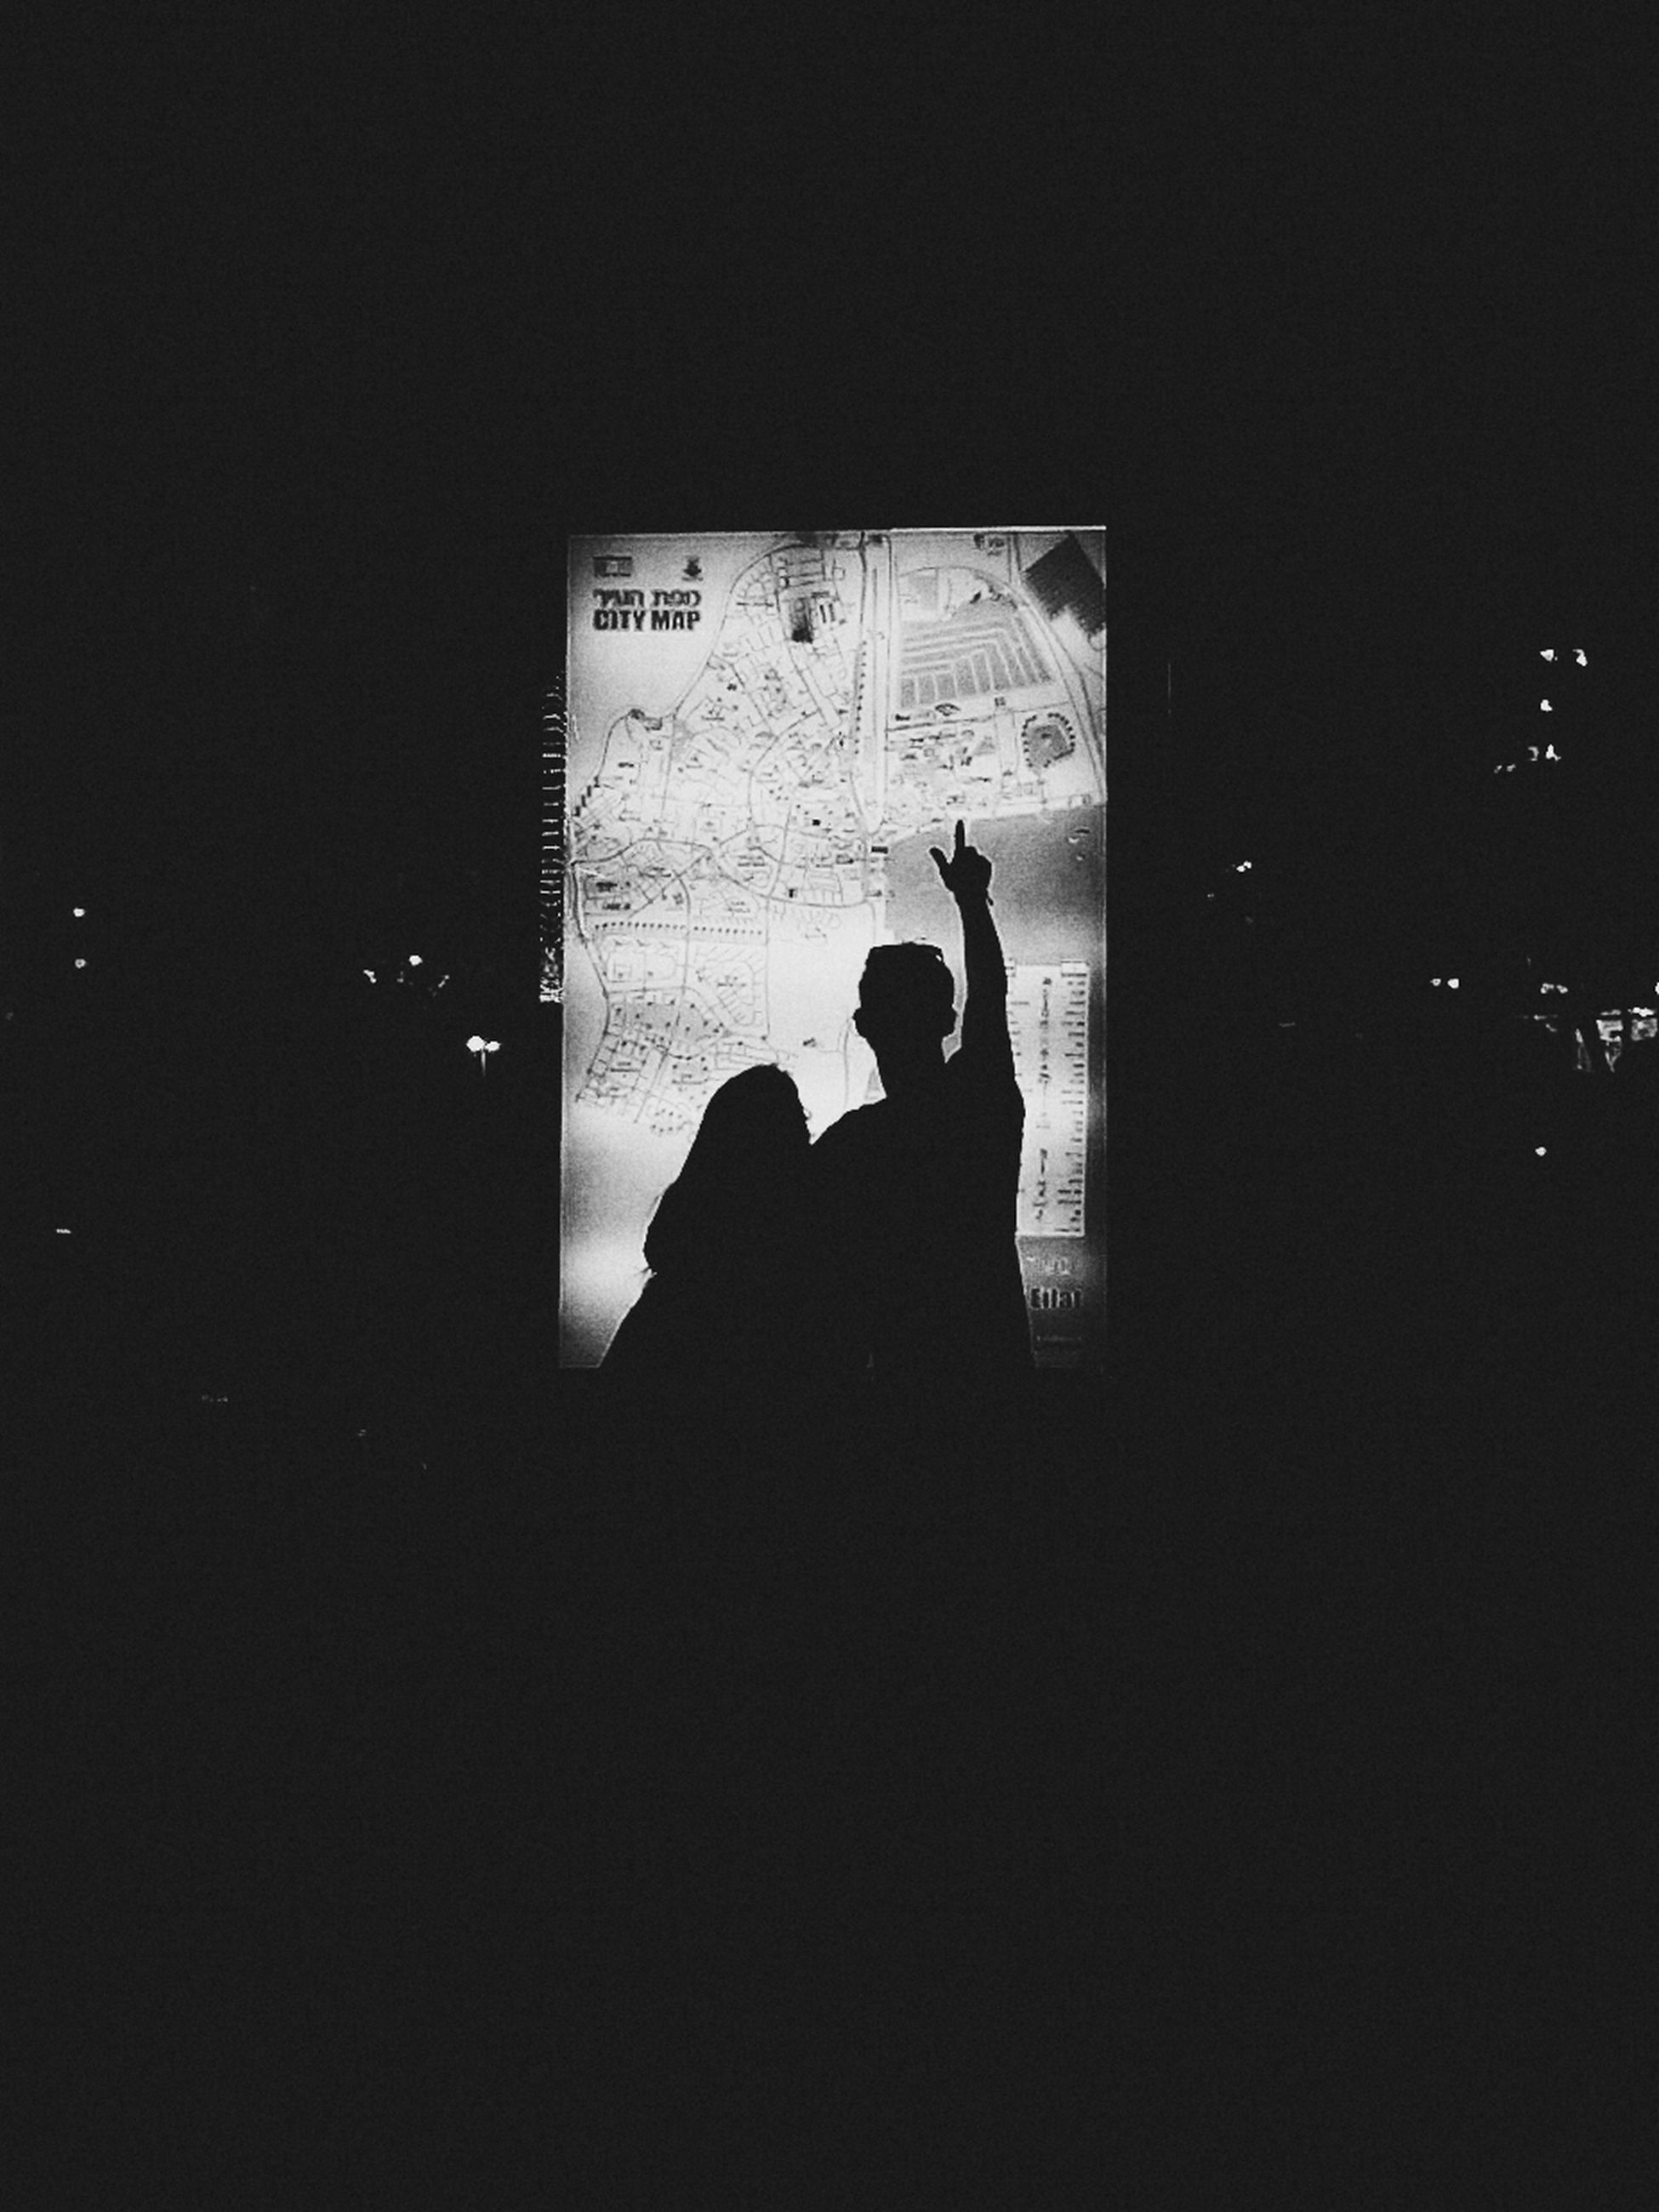 lifestyles, men, leisure activity, silhouette, indoors, communication, togetherness, night, copy space, text, standing, dark, bonding, person, love, photographing, rear view